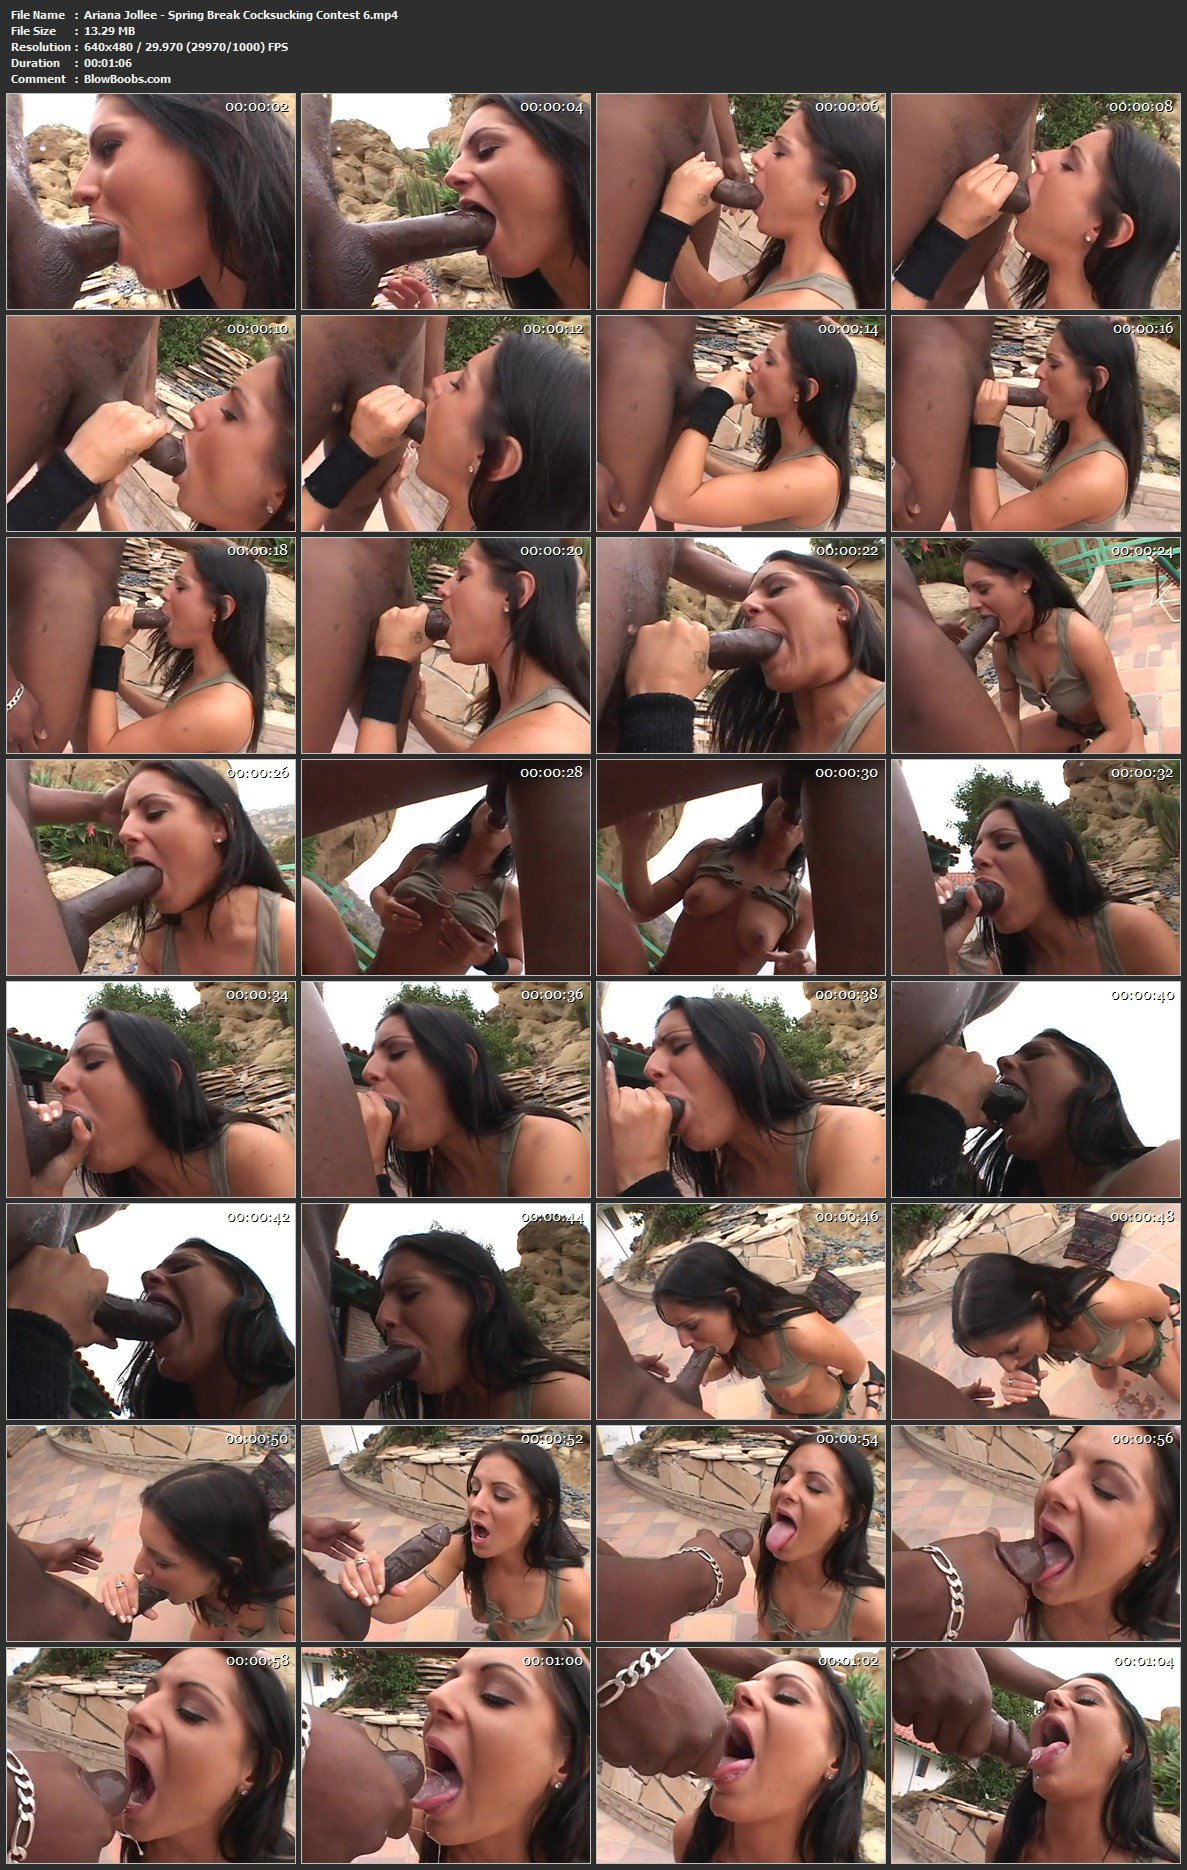 Ariana Jollee - Topnotch Throating Big Black Cock By Slapping Brunette